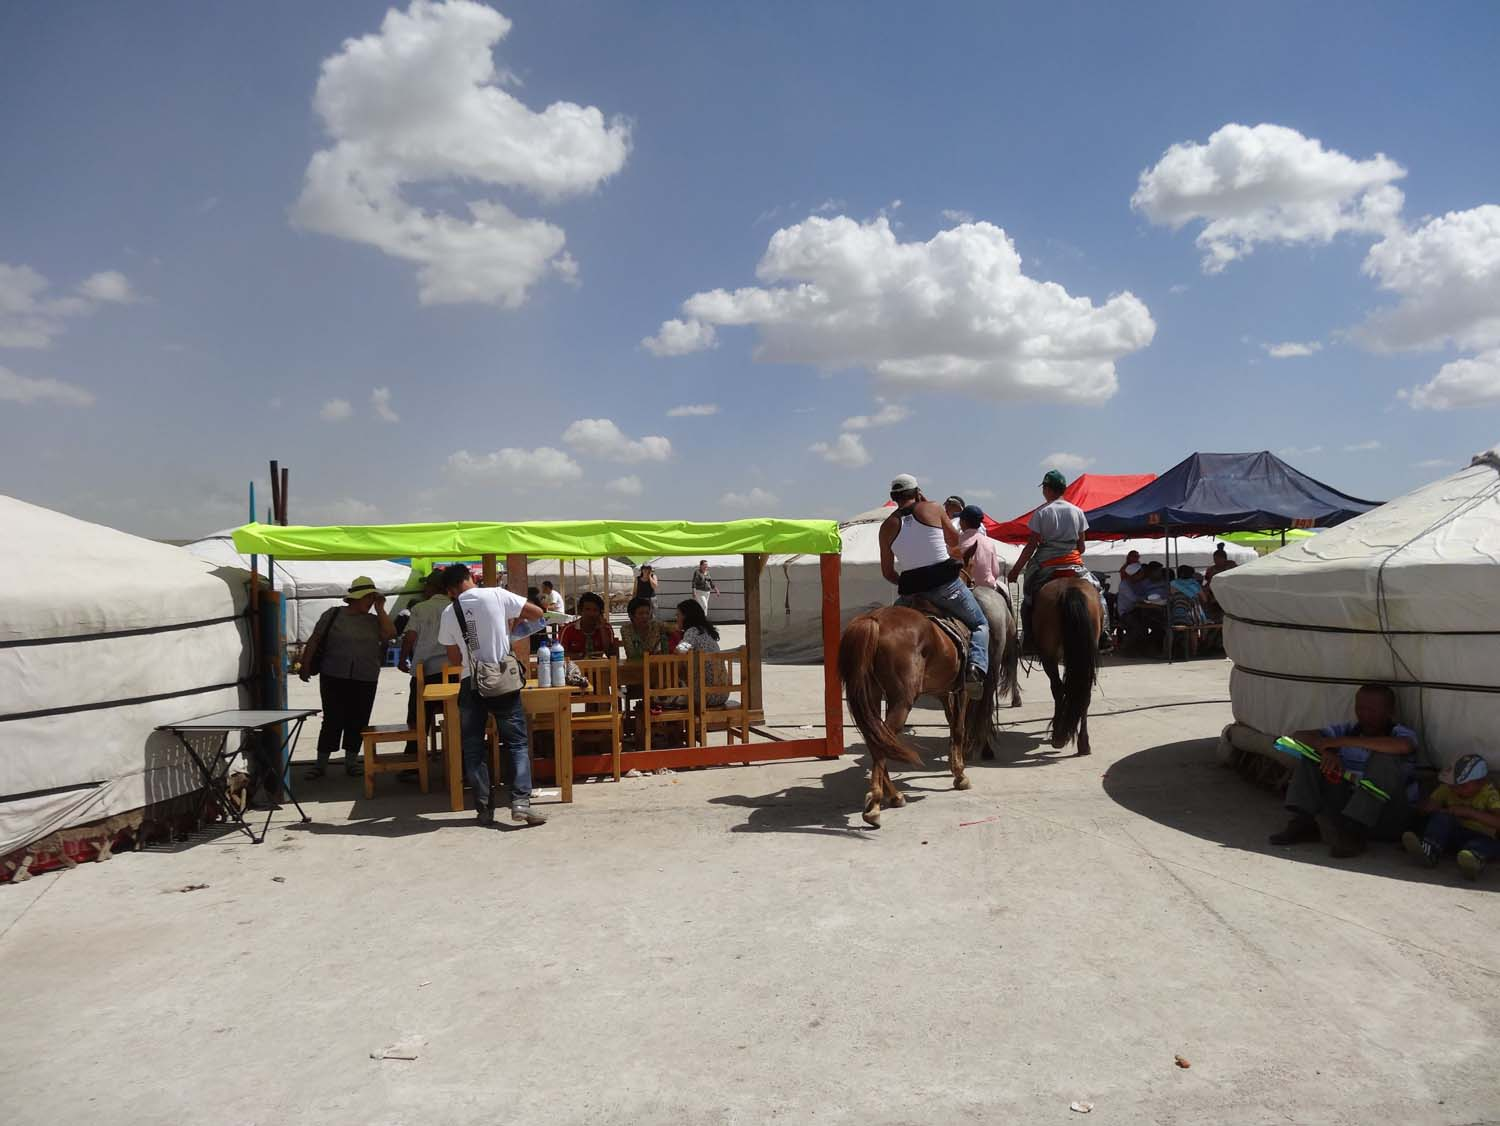 restaurants set up in the ger camp at the races, many families spend a few days or longer here